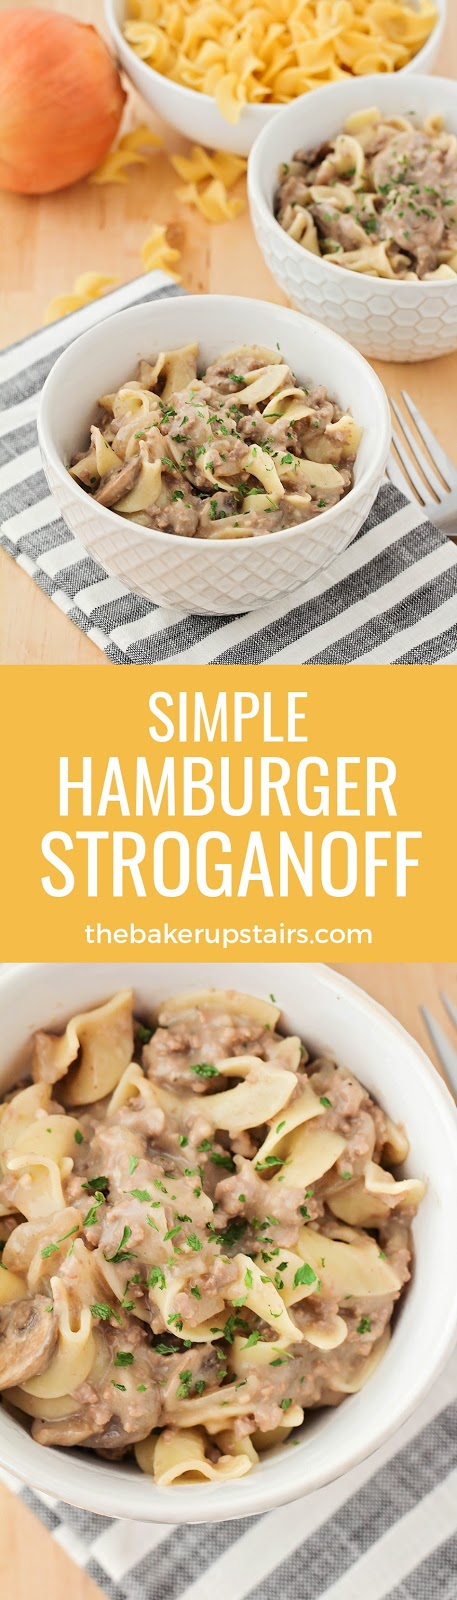 This delicious and simple hamburger stroganoff is ready in under thirty minutes, and the perfect meal for a busy weeknight!